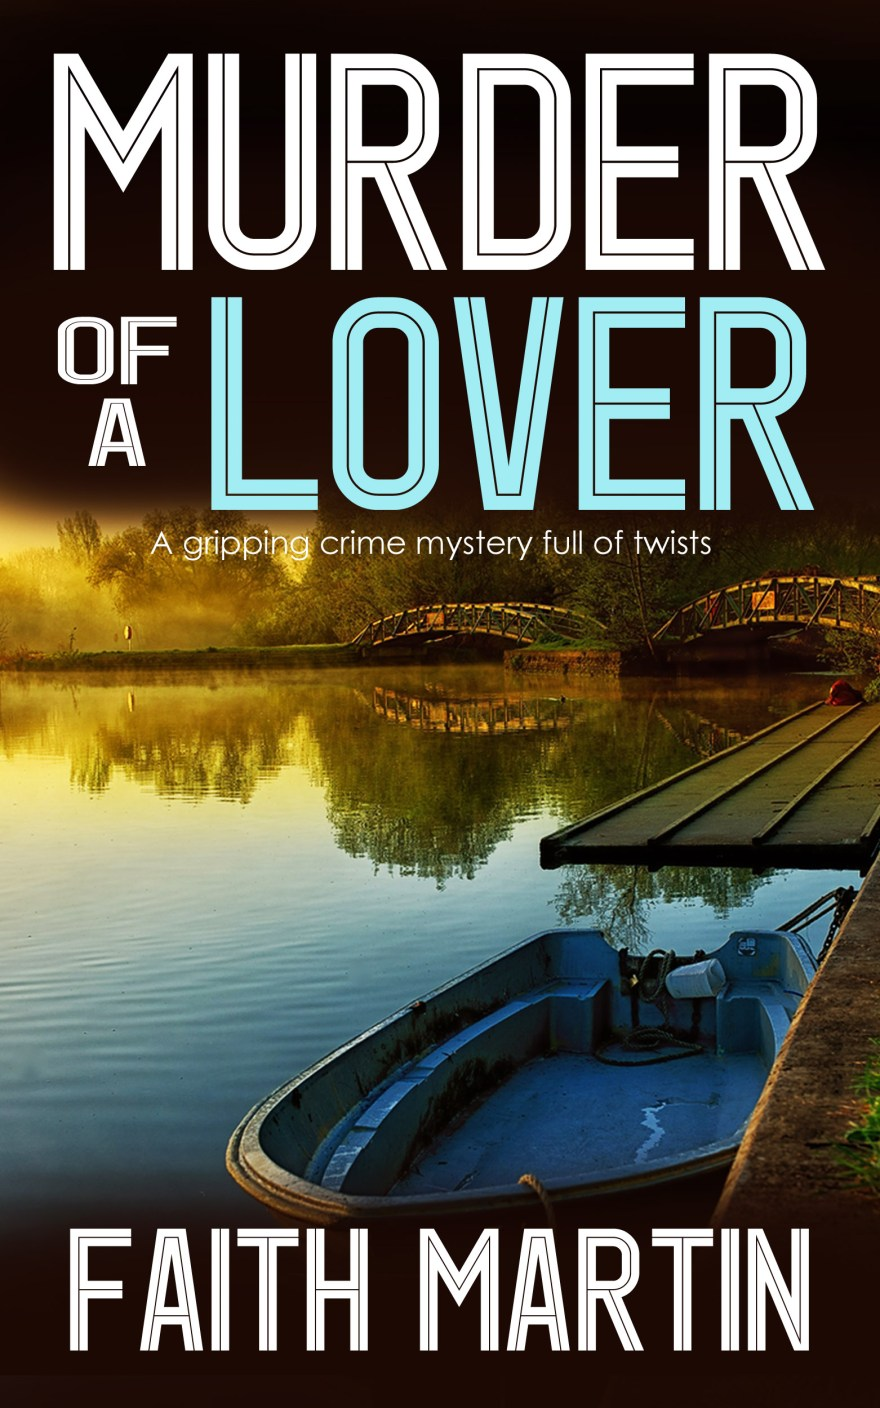 MURDER OF A LOVER